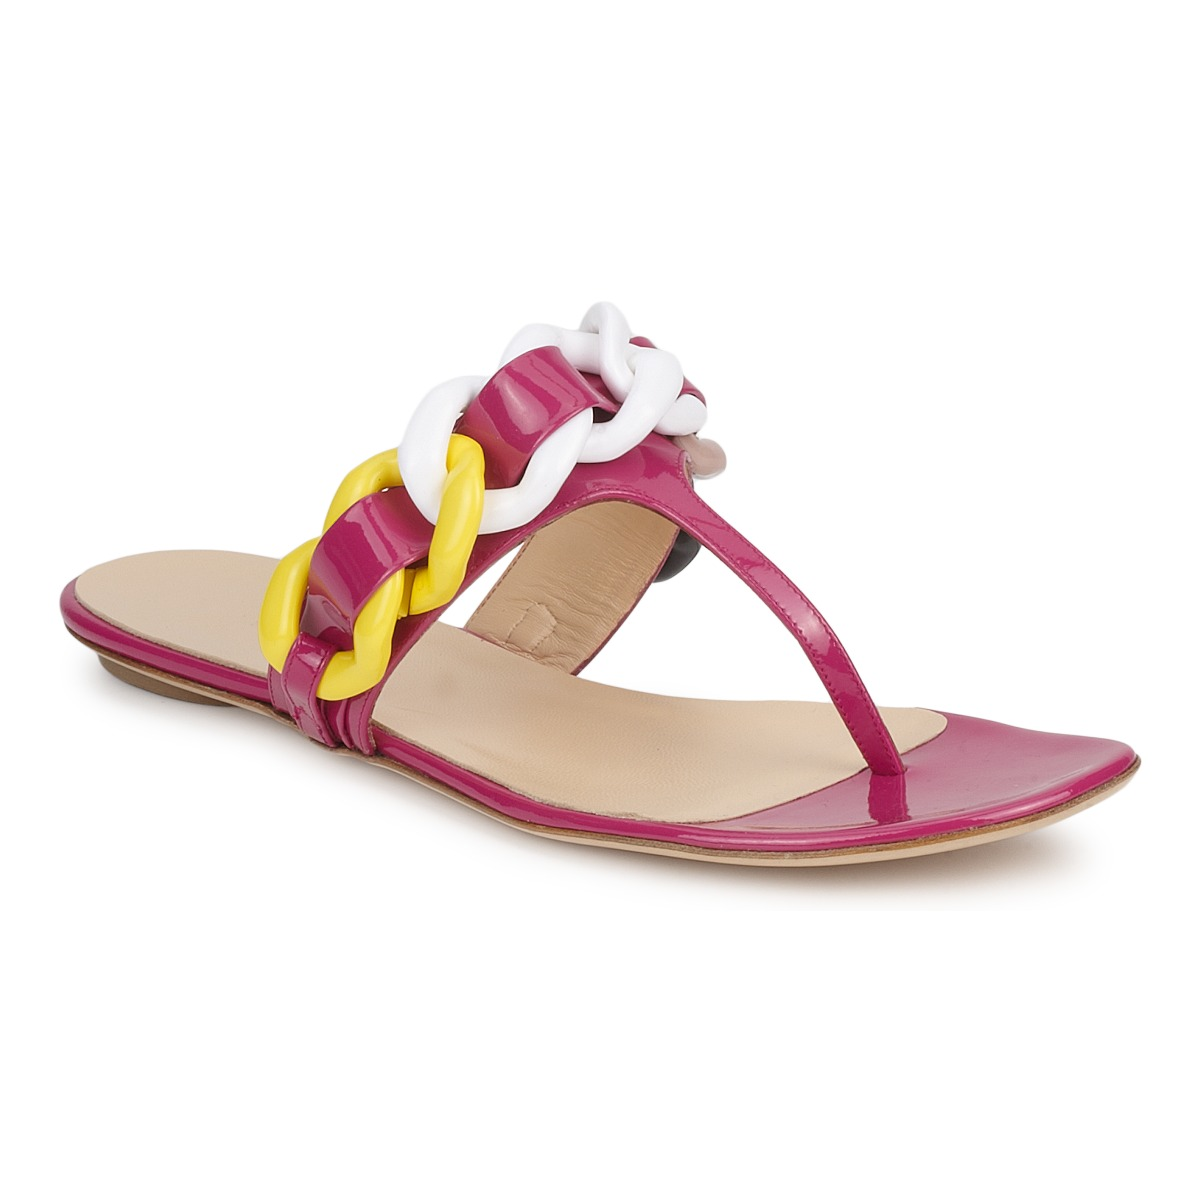 Versus by Versace FSD364C Pink / White / Yellow